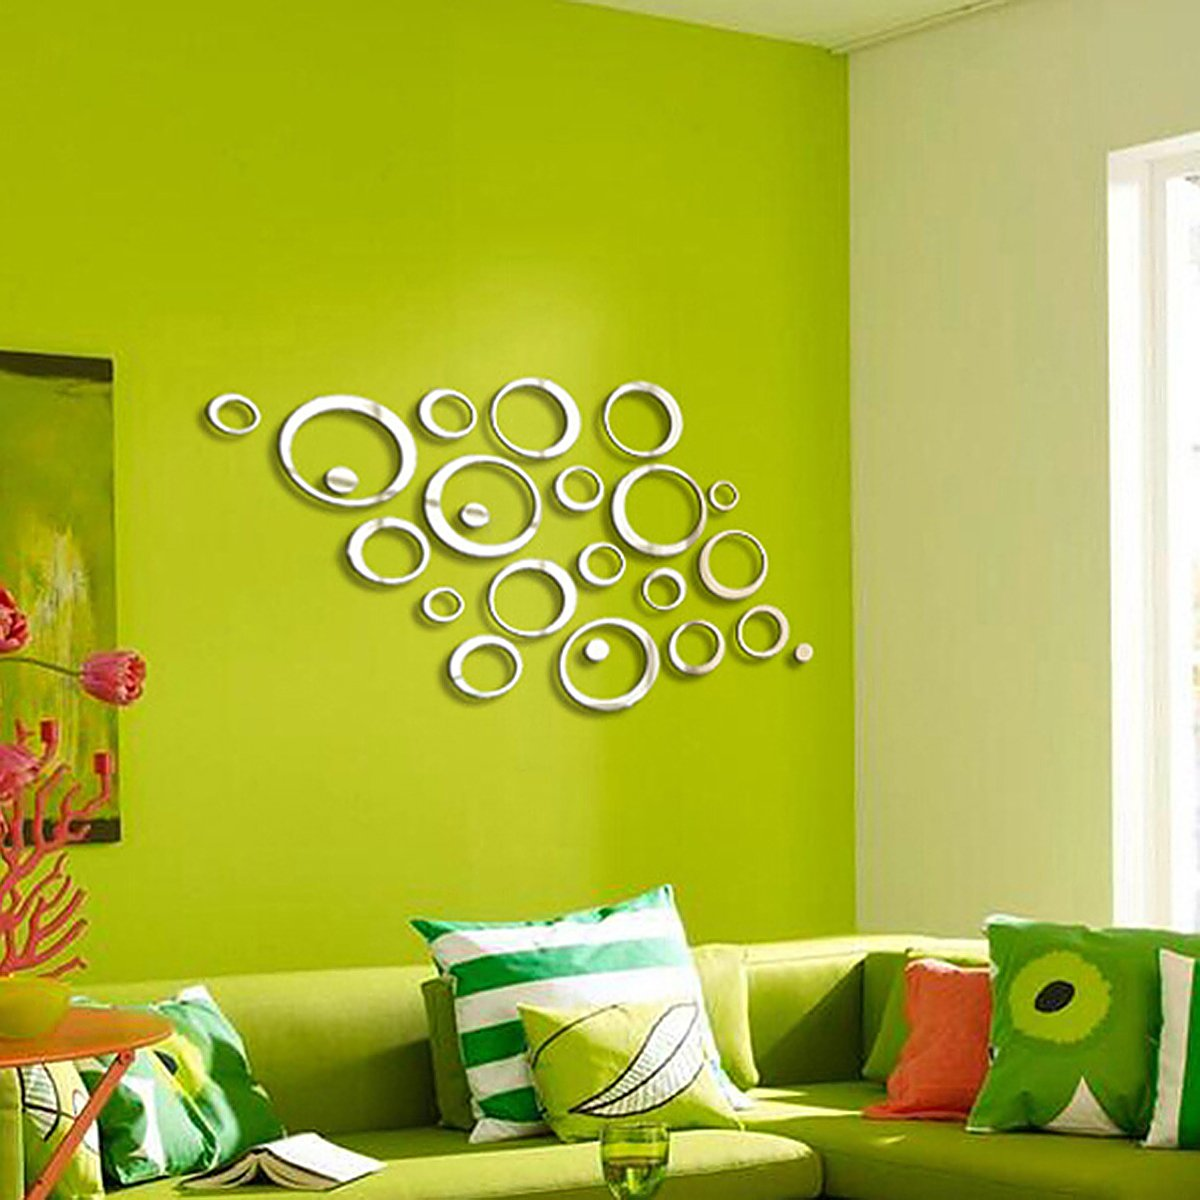 Amazon.com : Fashion 24pcs Circular Wall Sticker Decal Poster DIY ...